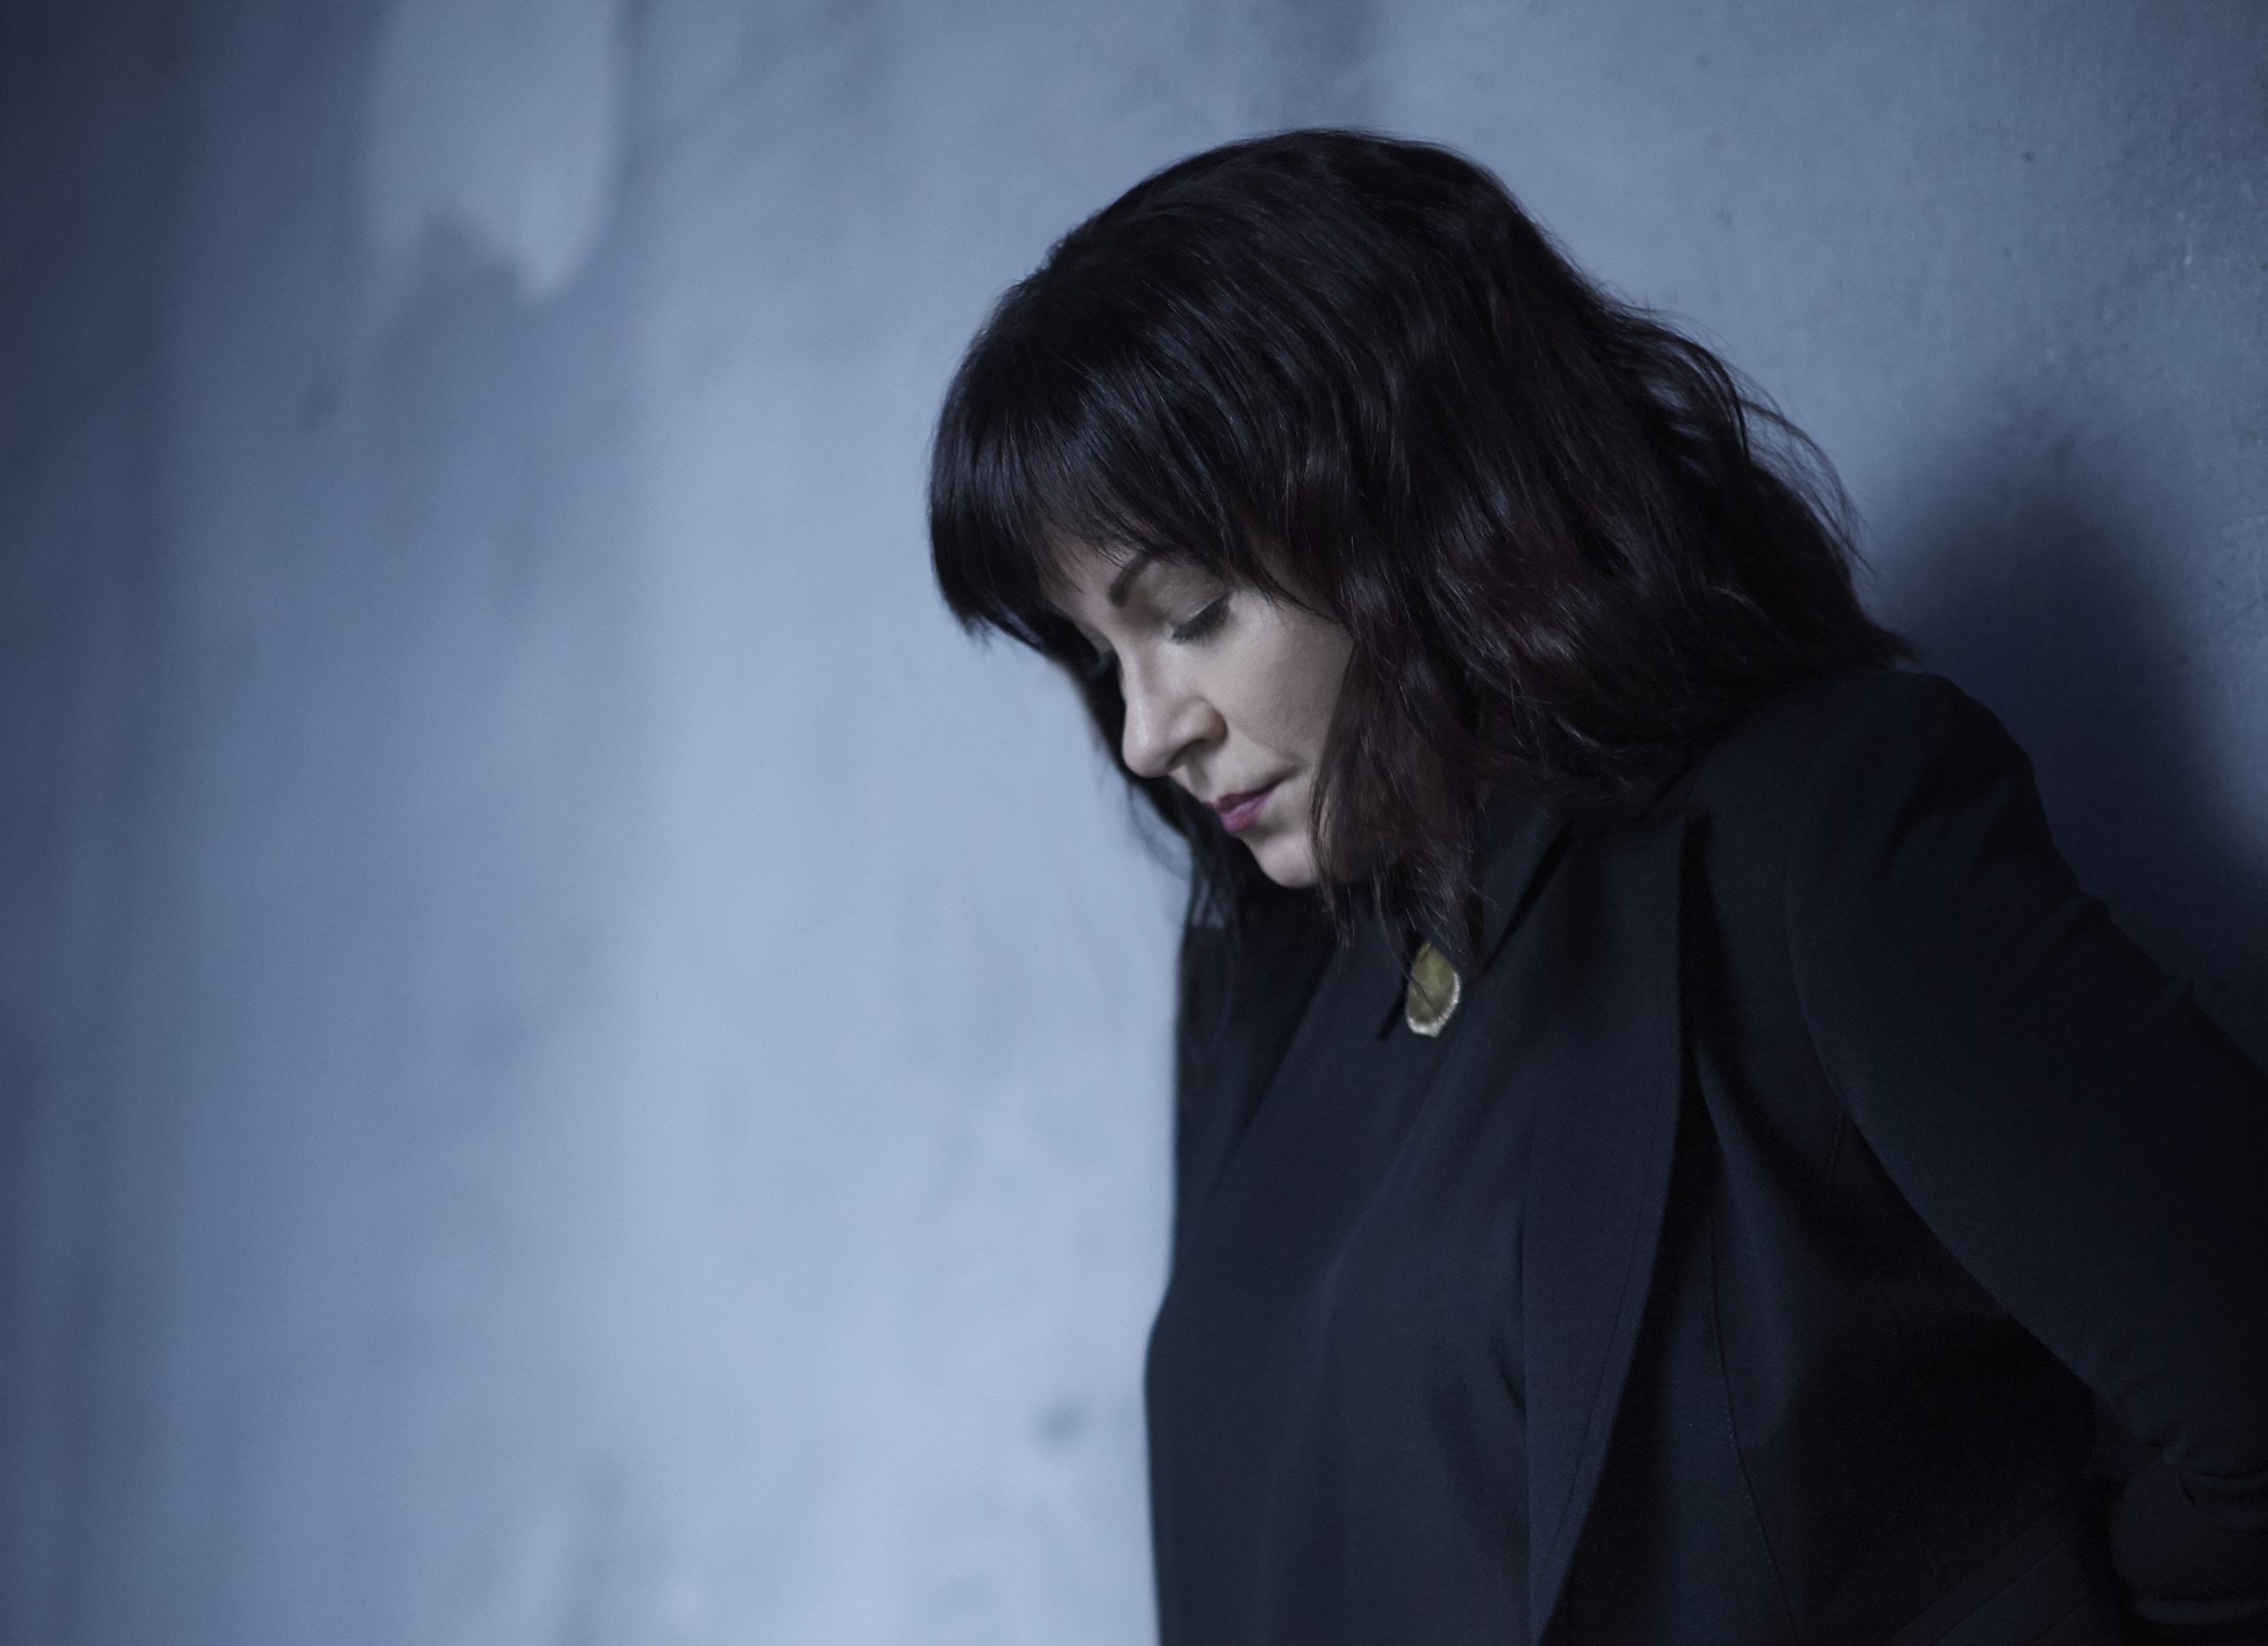 MIXTAPE: Janiva Magness's Folk Is a Four-Letter Word